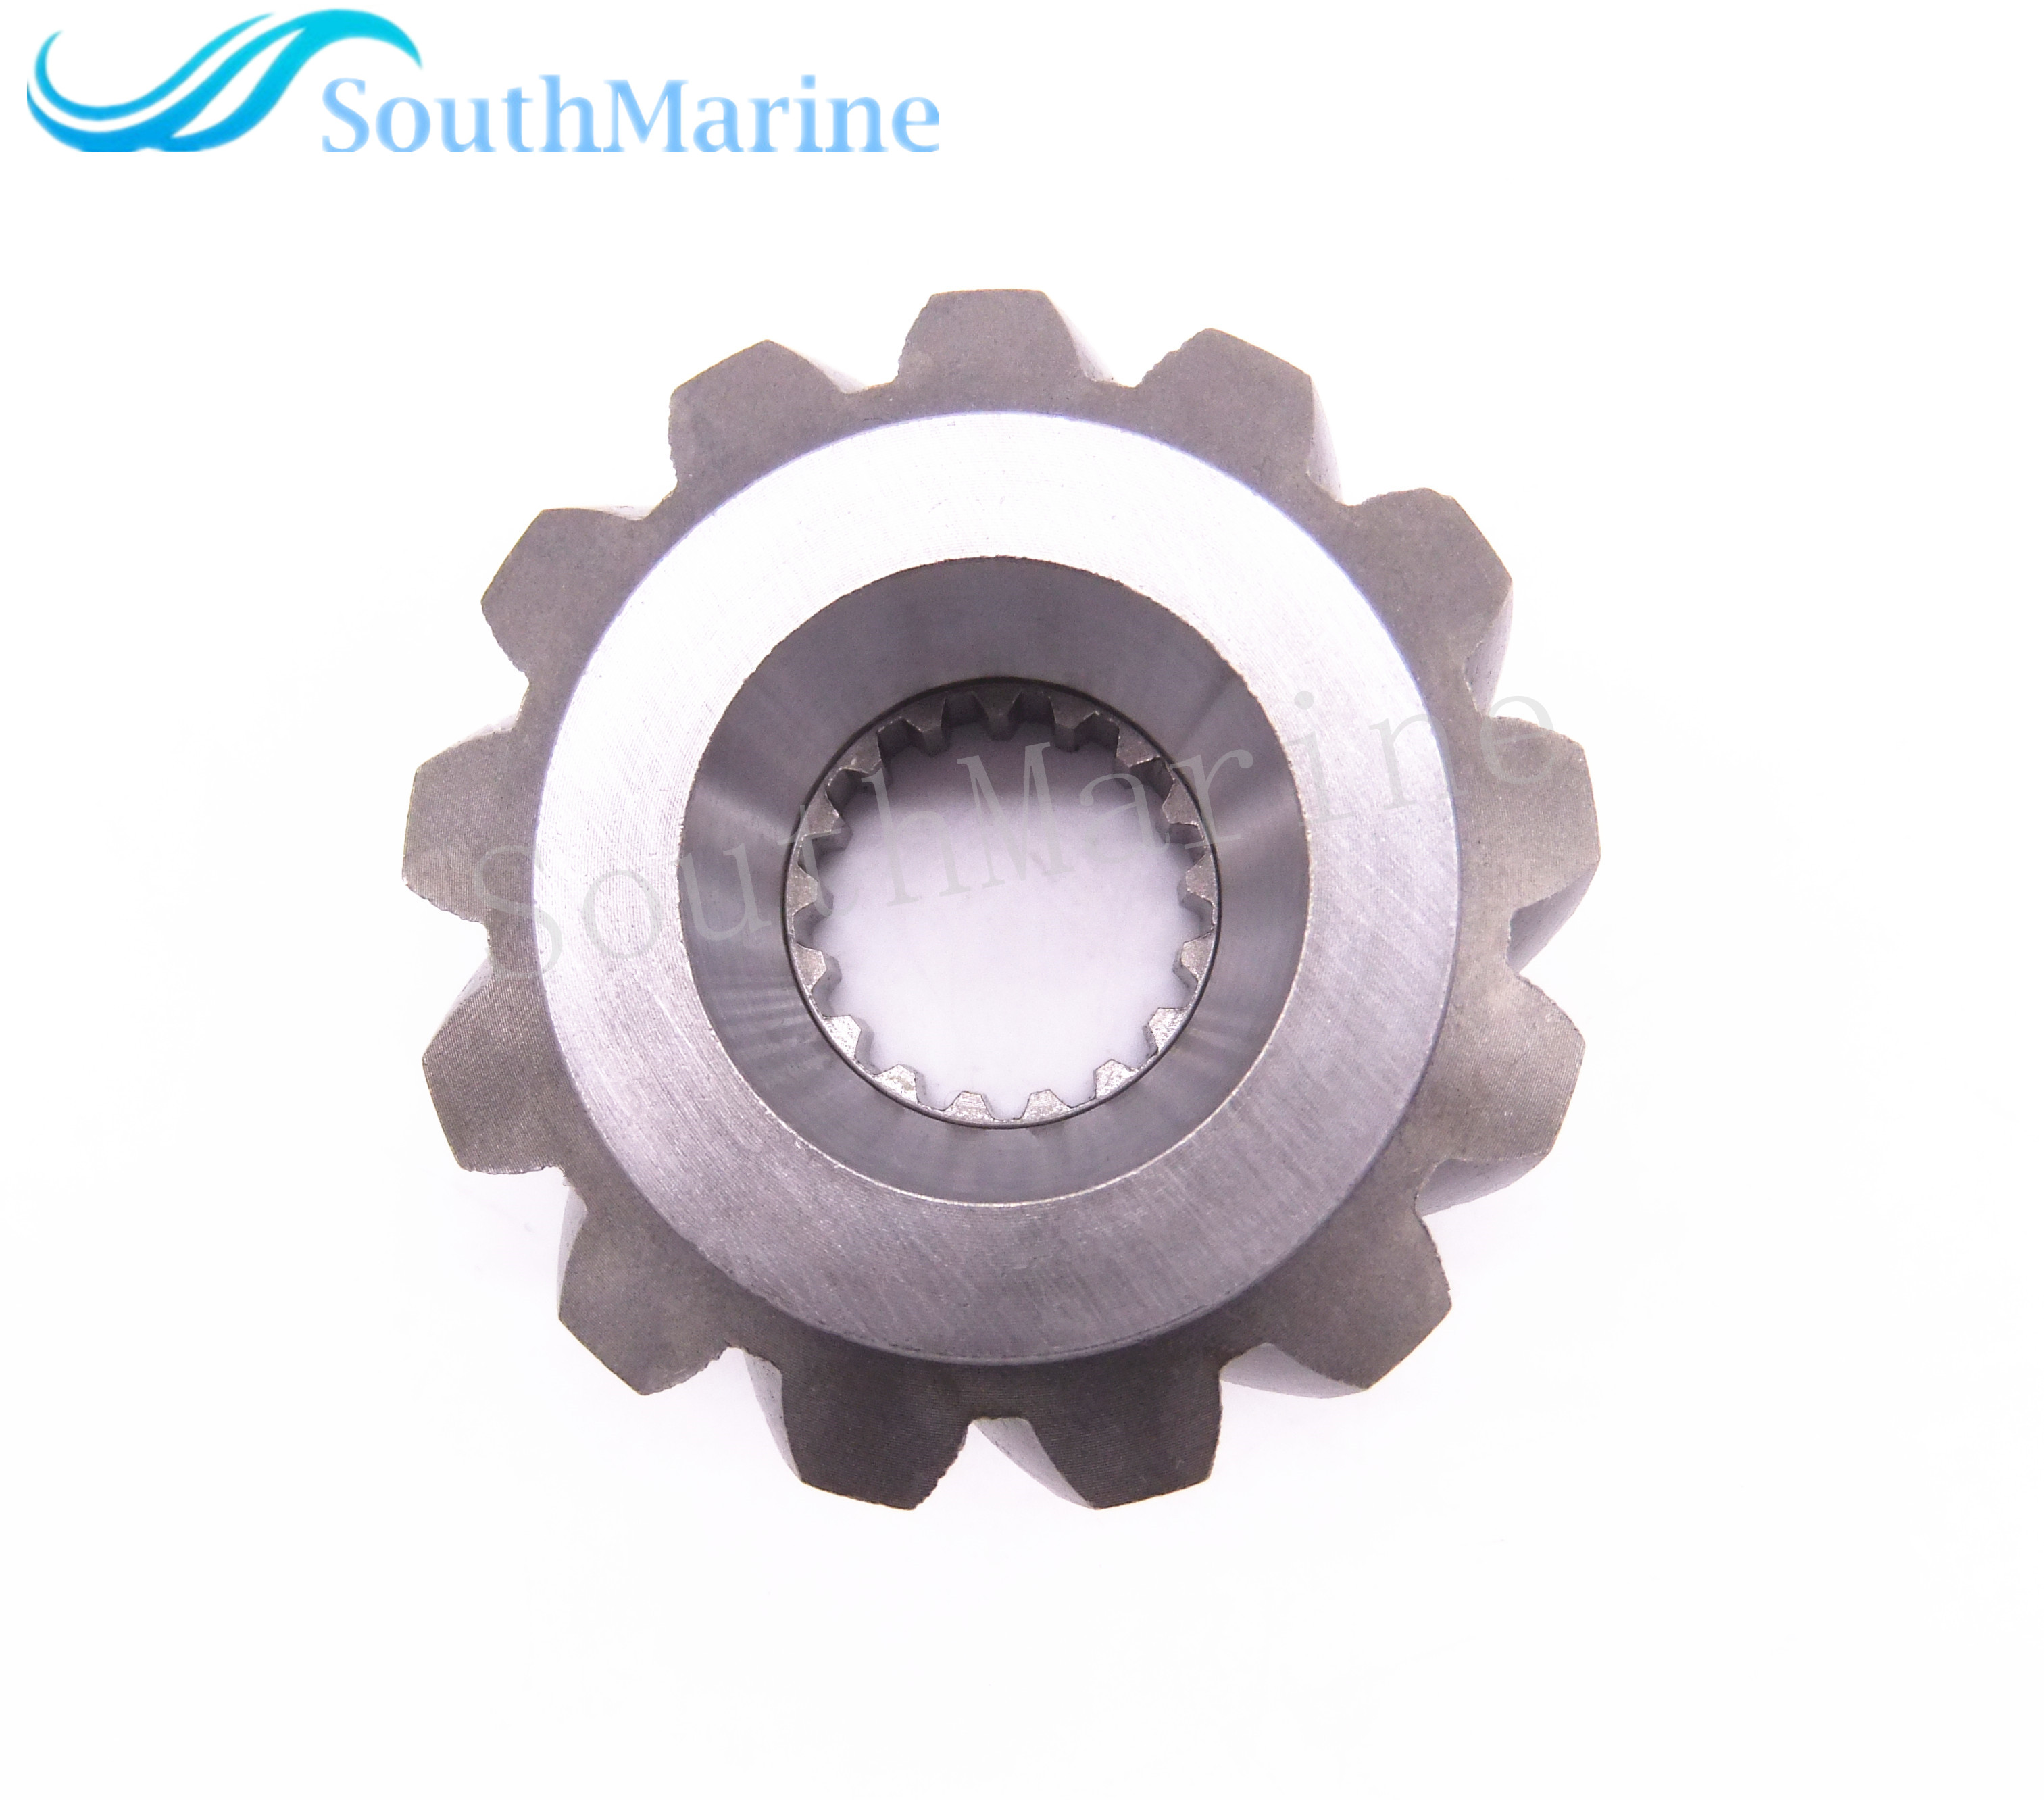 Boat Motor T85-04000605 Pinion Gear For Parsun Hdx Outboard Engine 2-stroke T75 T85 T90 Free Shipping Available In Various Designs And Specifications For Your Selection Boat Engine Automobiles & Motorcycles